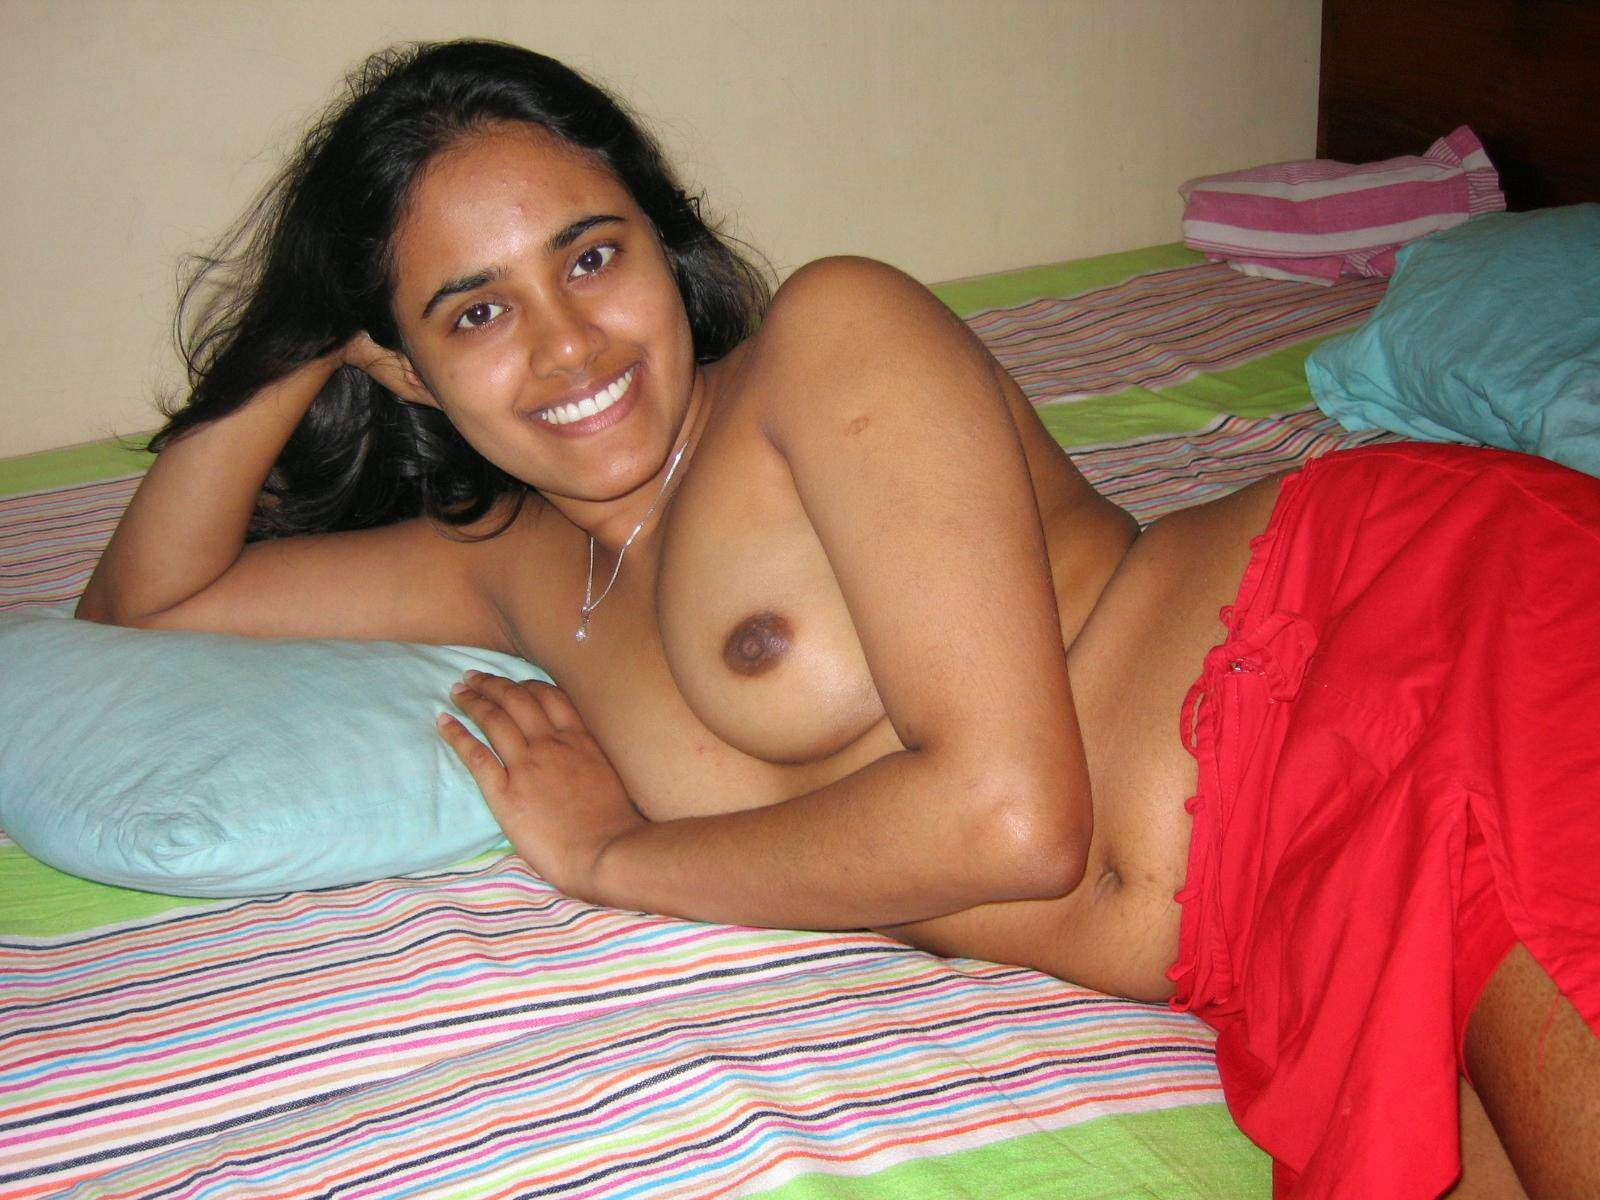 srilankan sex free download